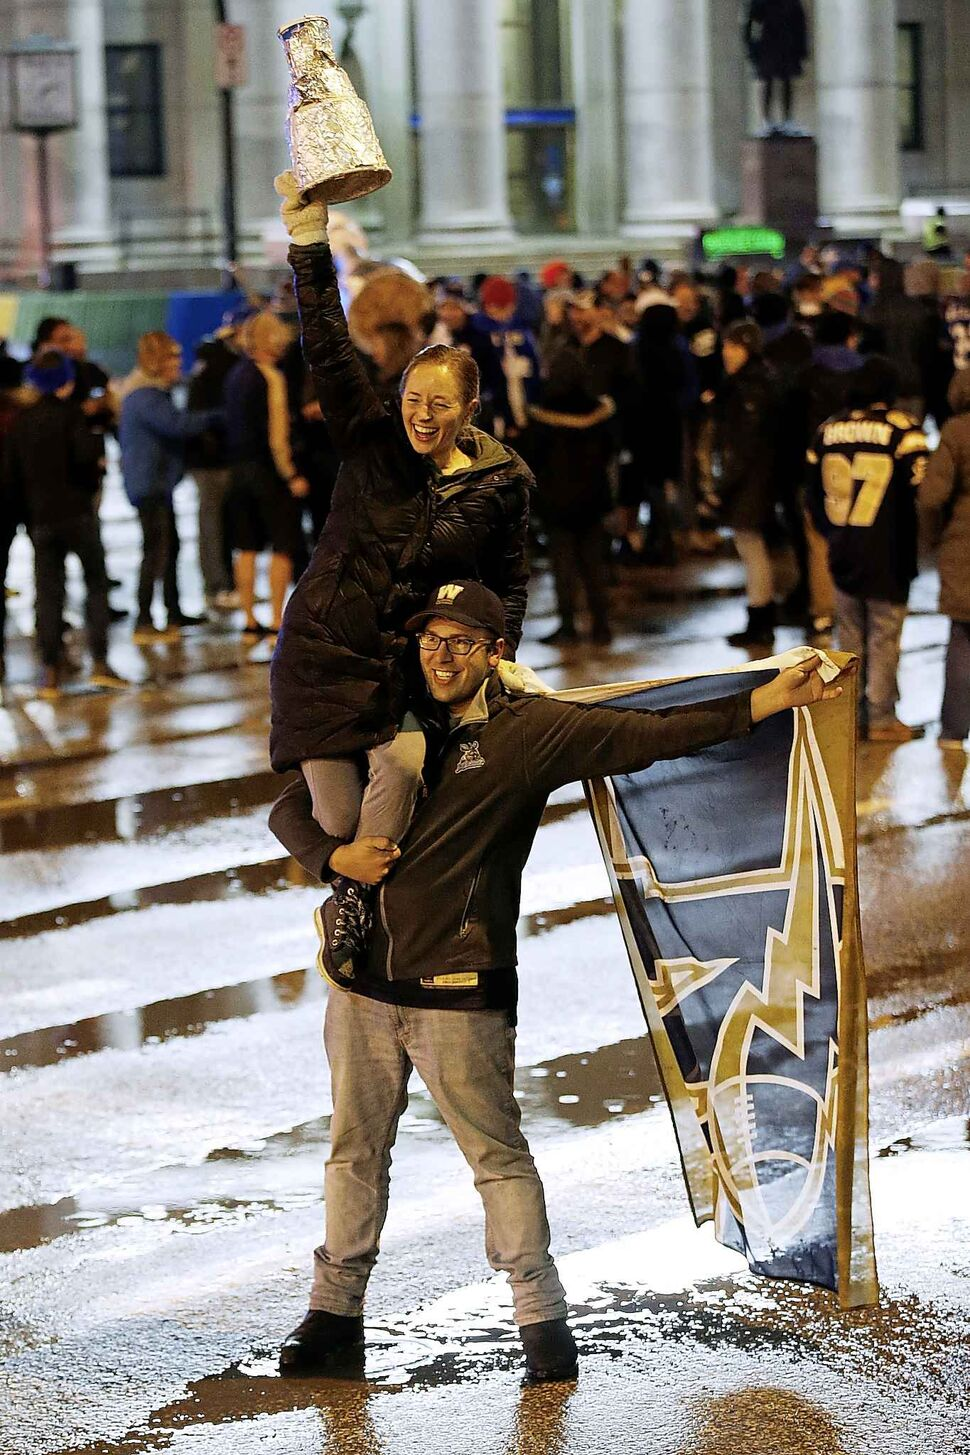 Winnipeg Blue Bomber fans celebrate winning the 107th Grey Cup.  (John Woods / The Canadian Press)